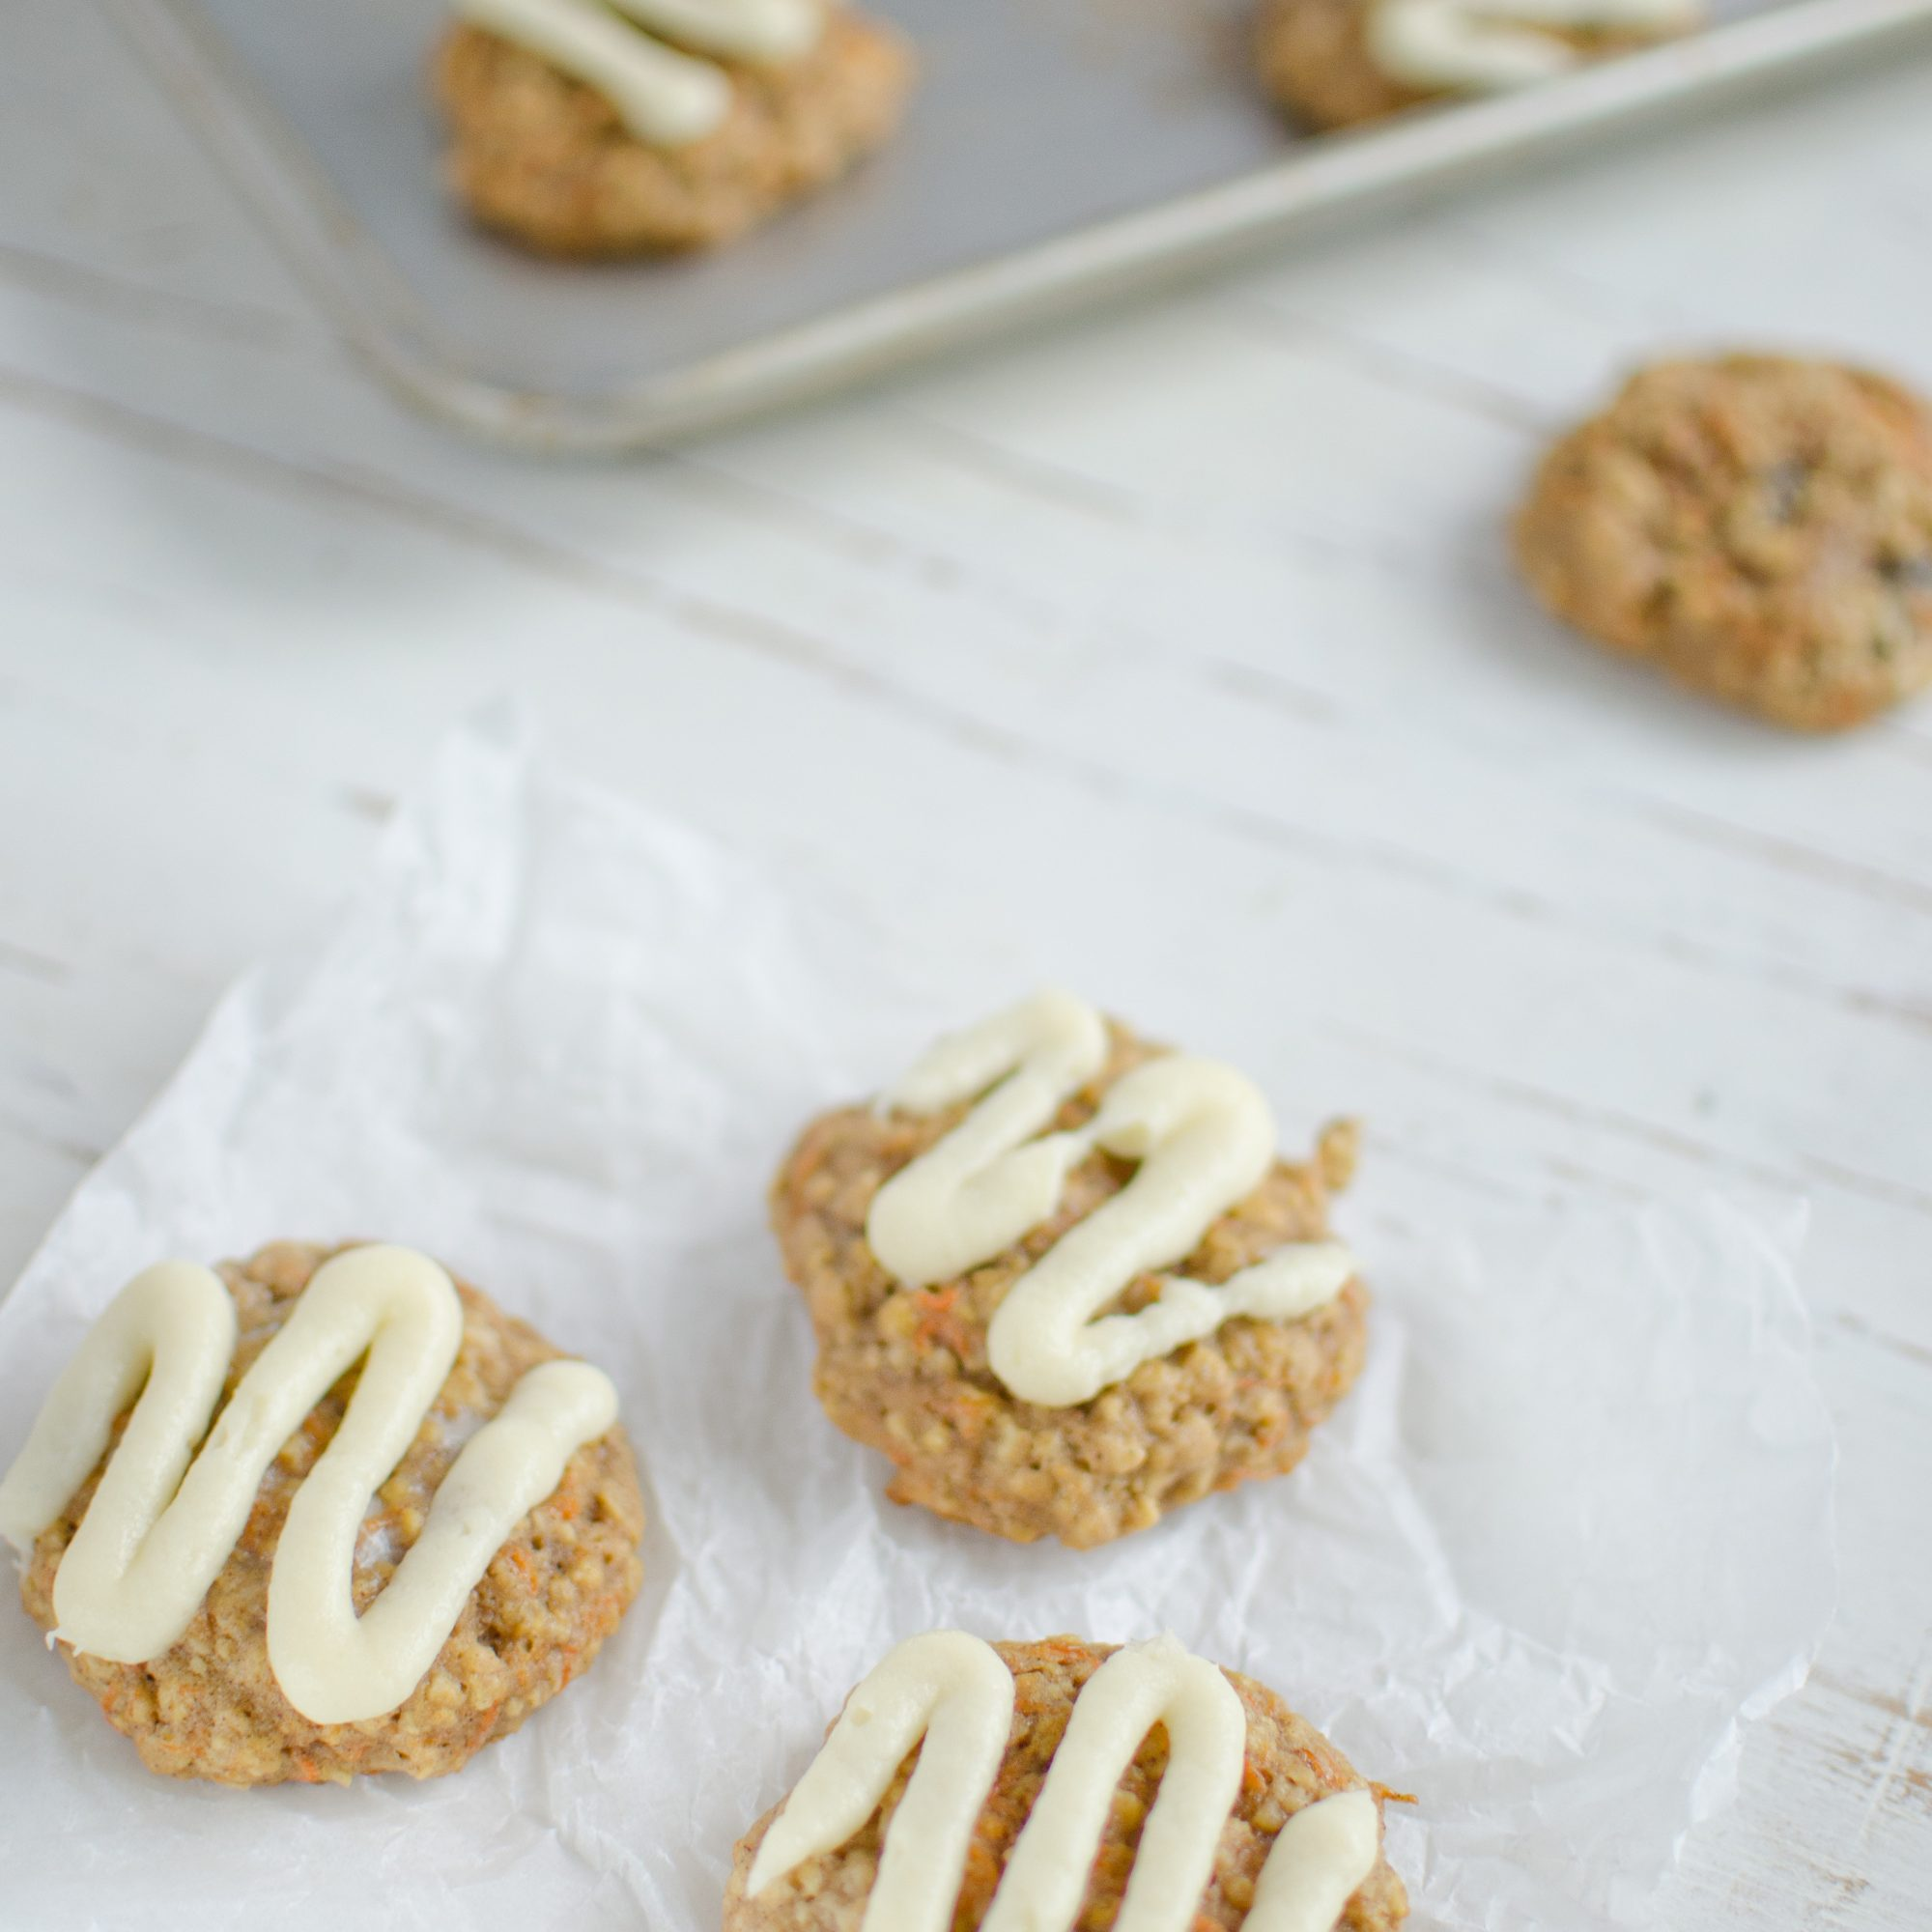 Oatmeal-Carrot Cookies with Cream Cheese Frosting